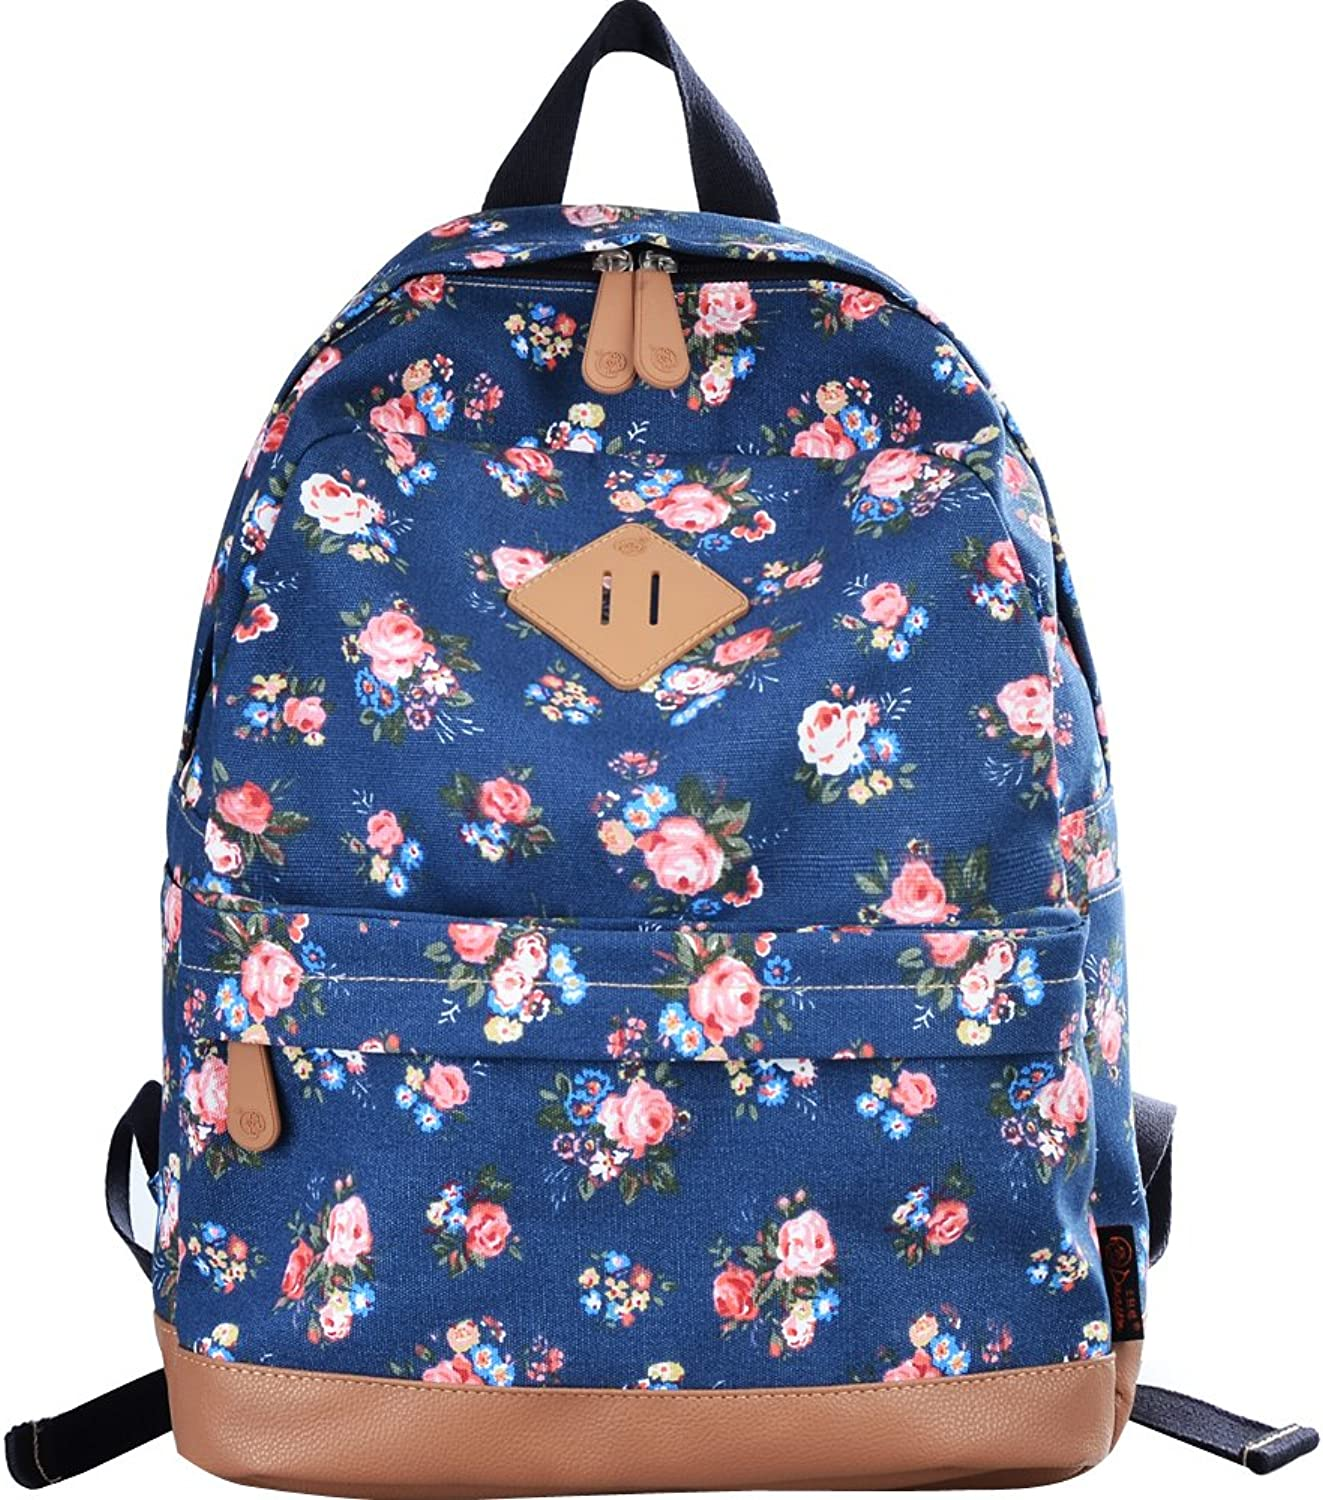 DGY Womens Peony Pattern Design Korean Fashion Casual Preppy Style Backpack G00133 Light blueee